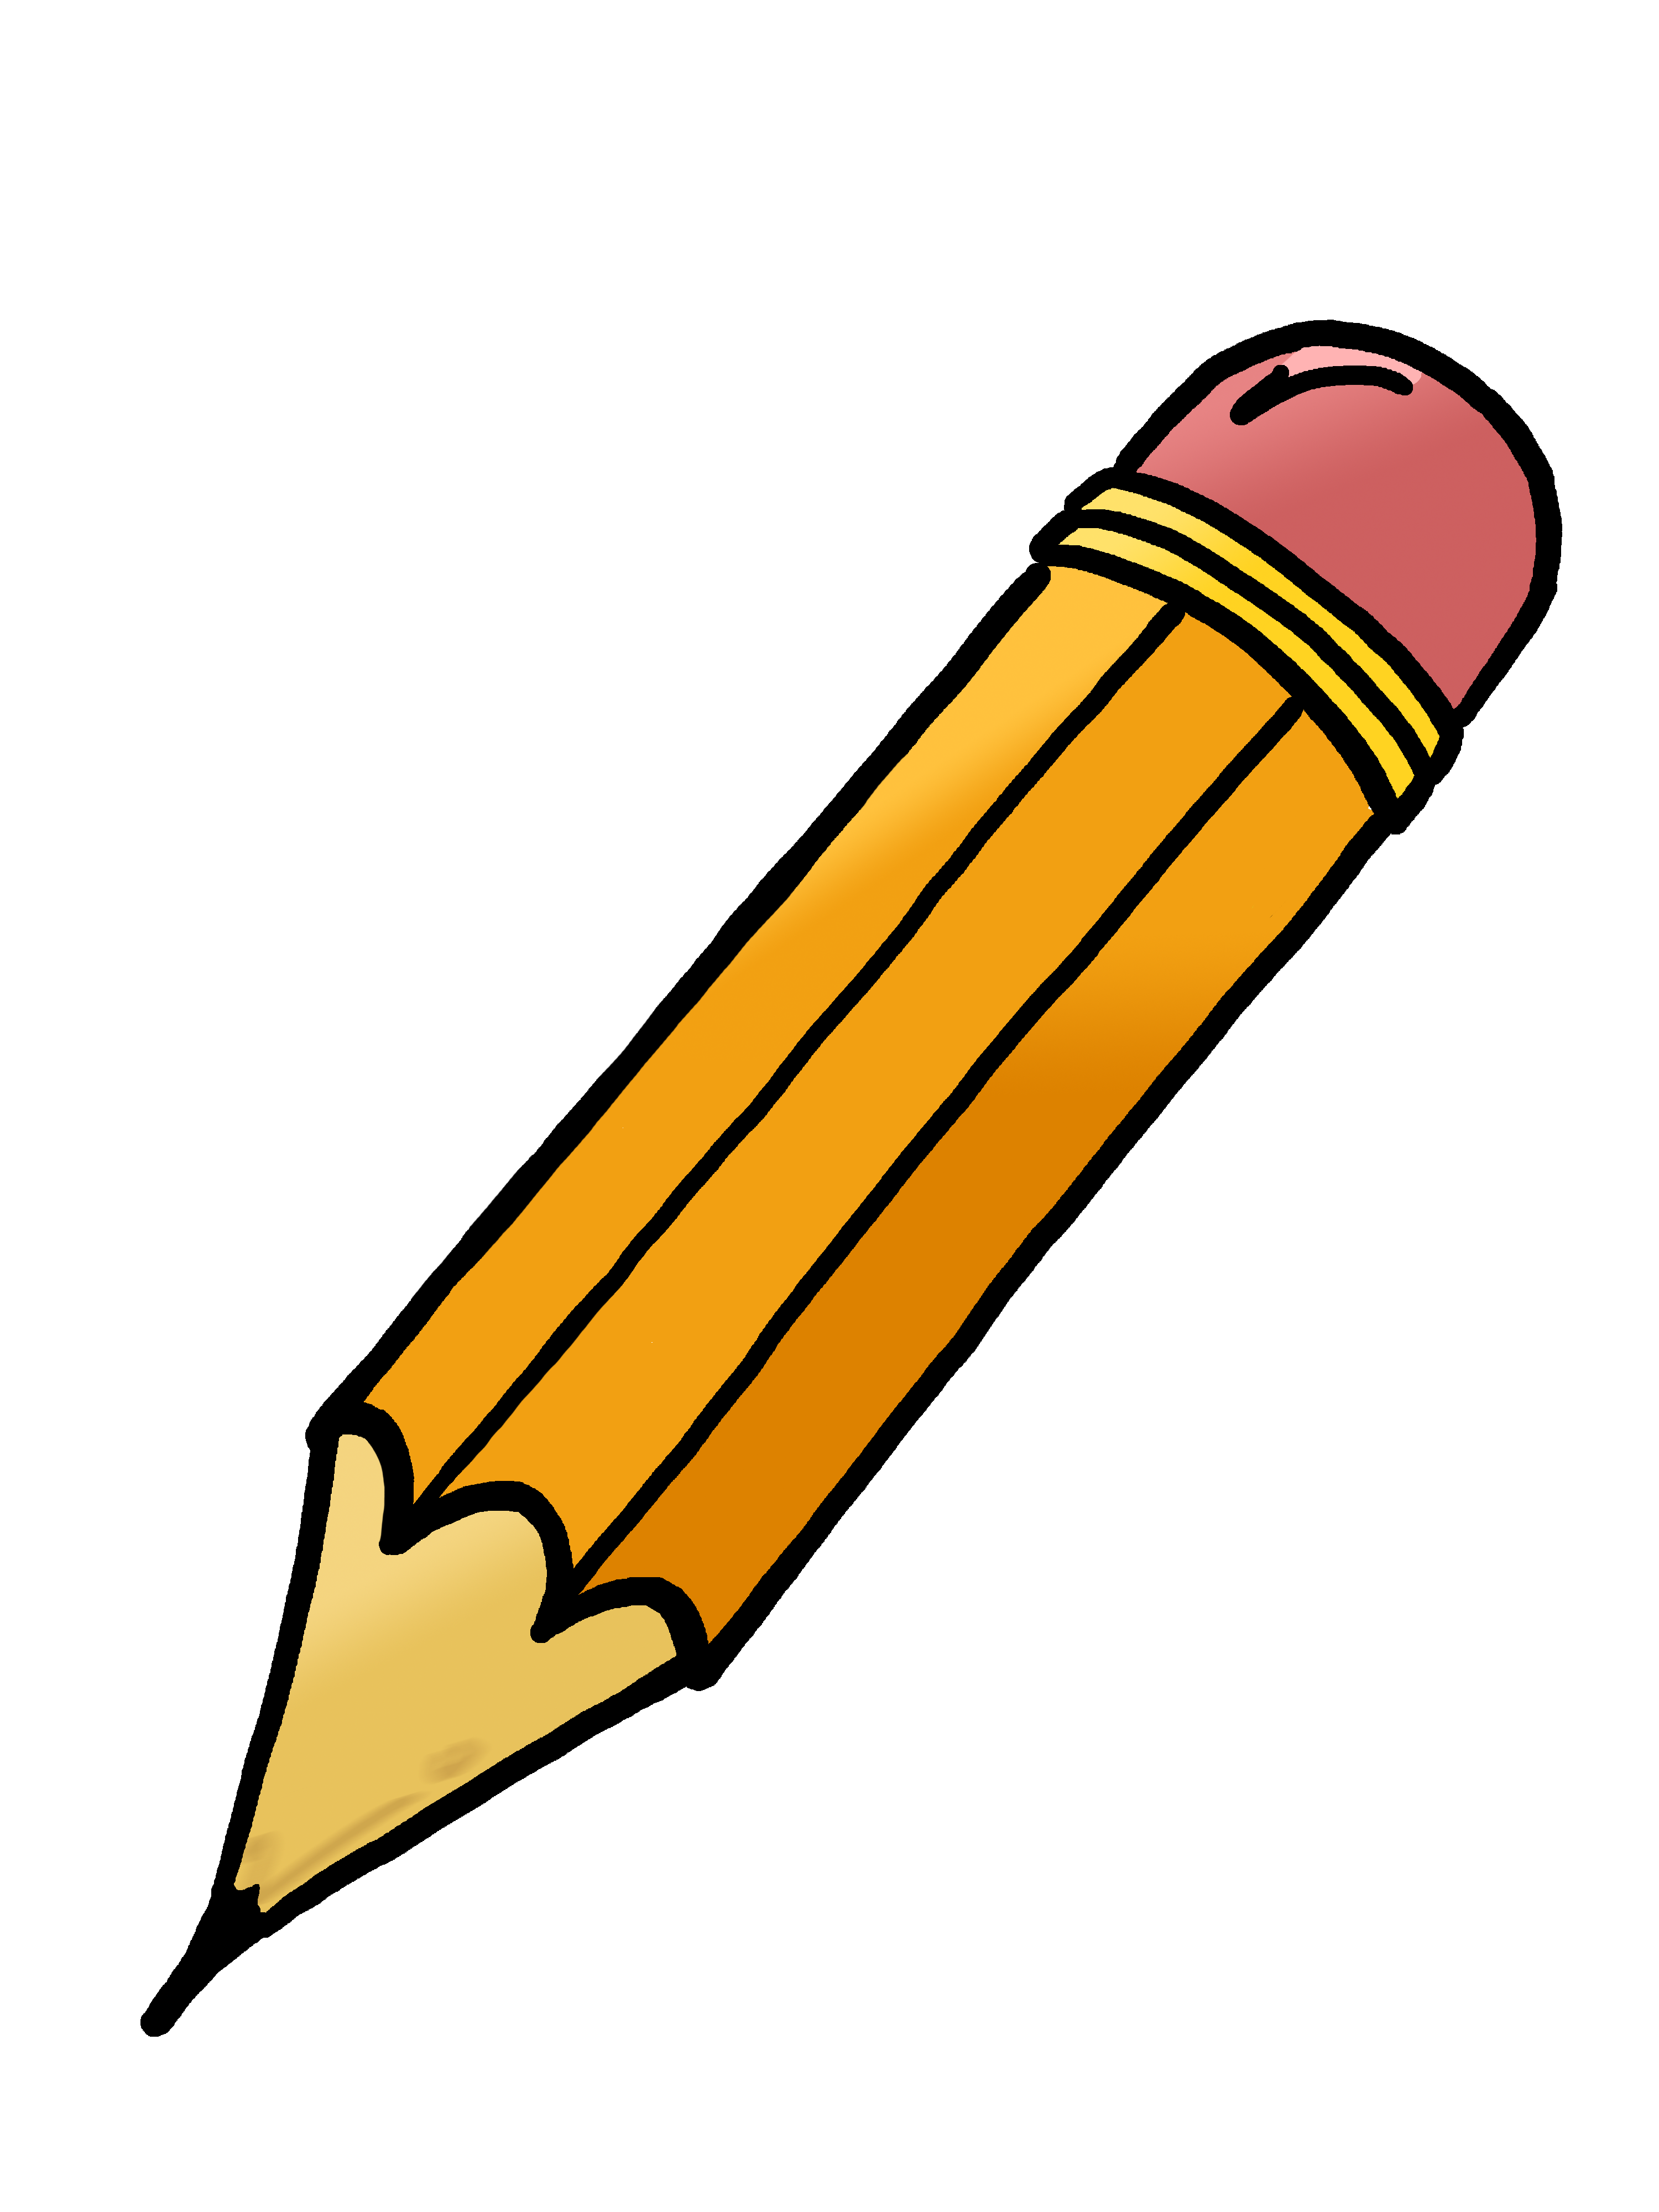 Images of Pencil | 3000x4000